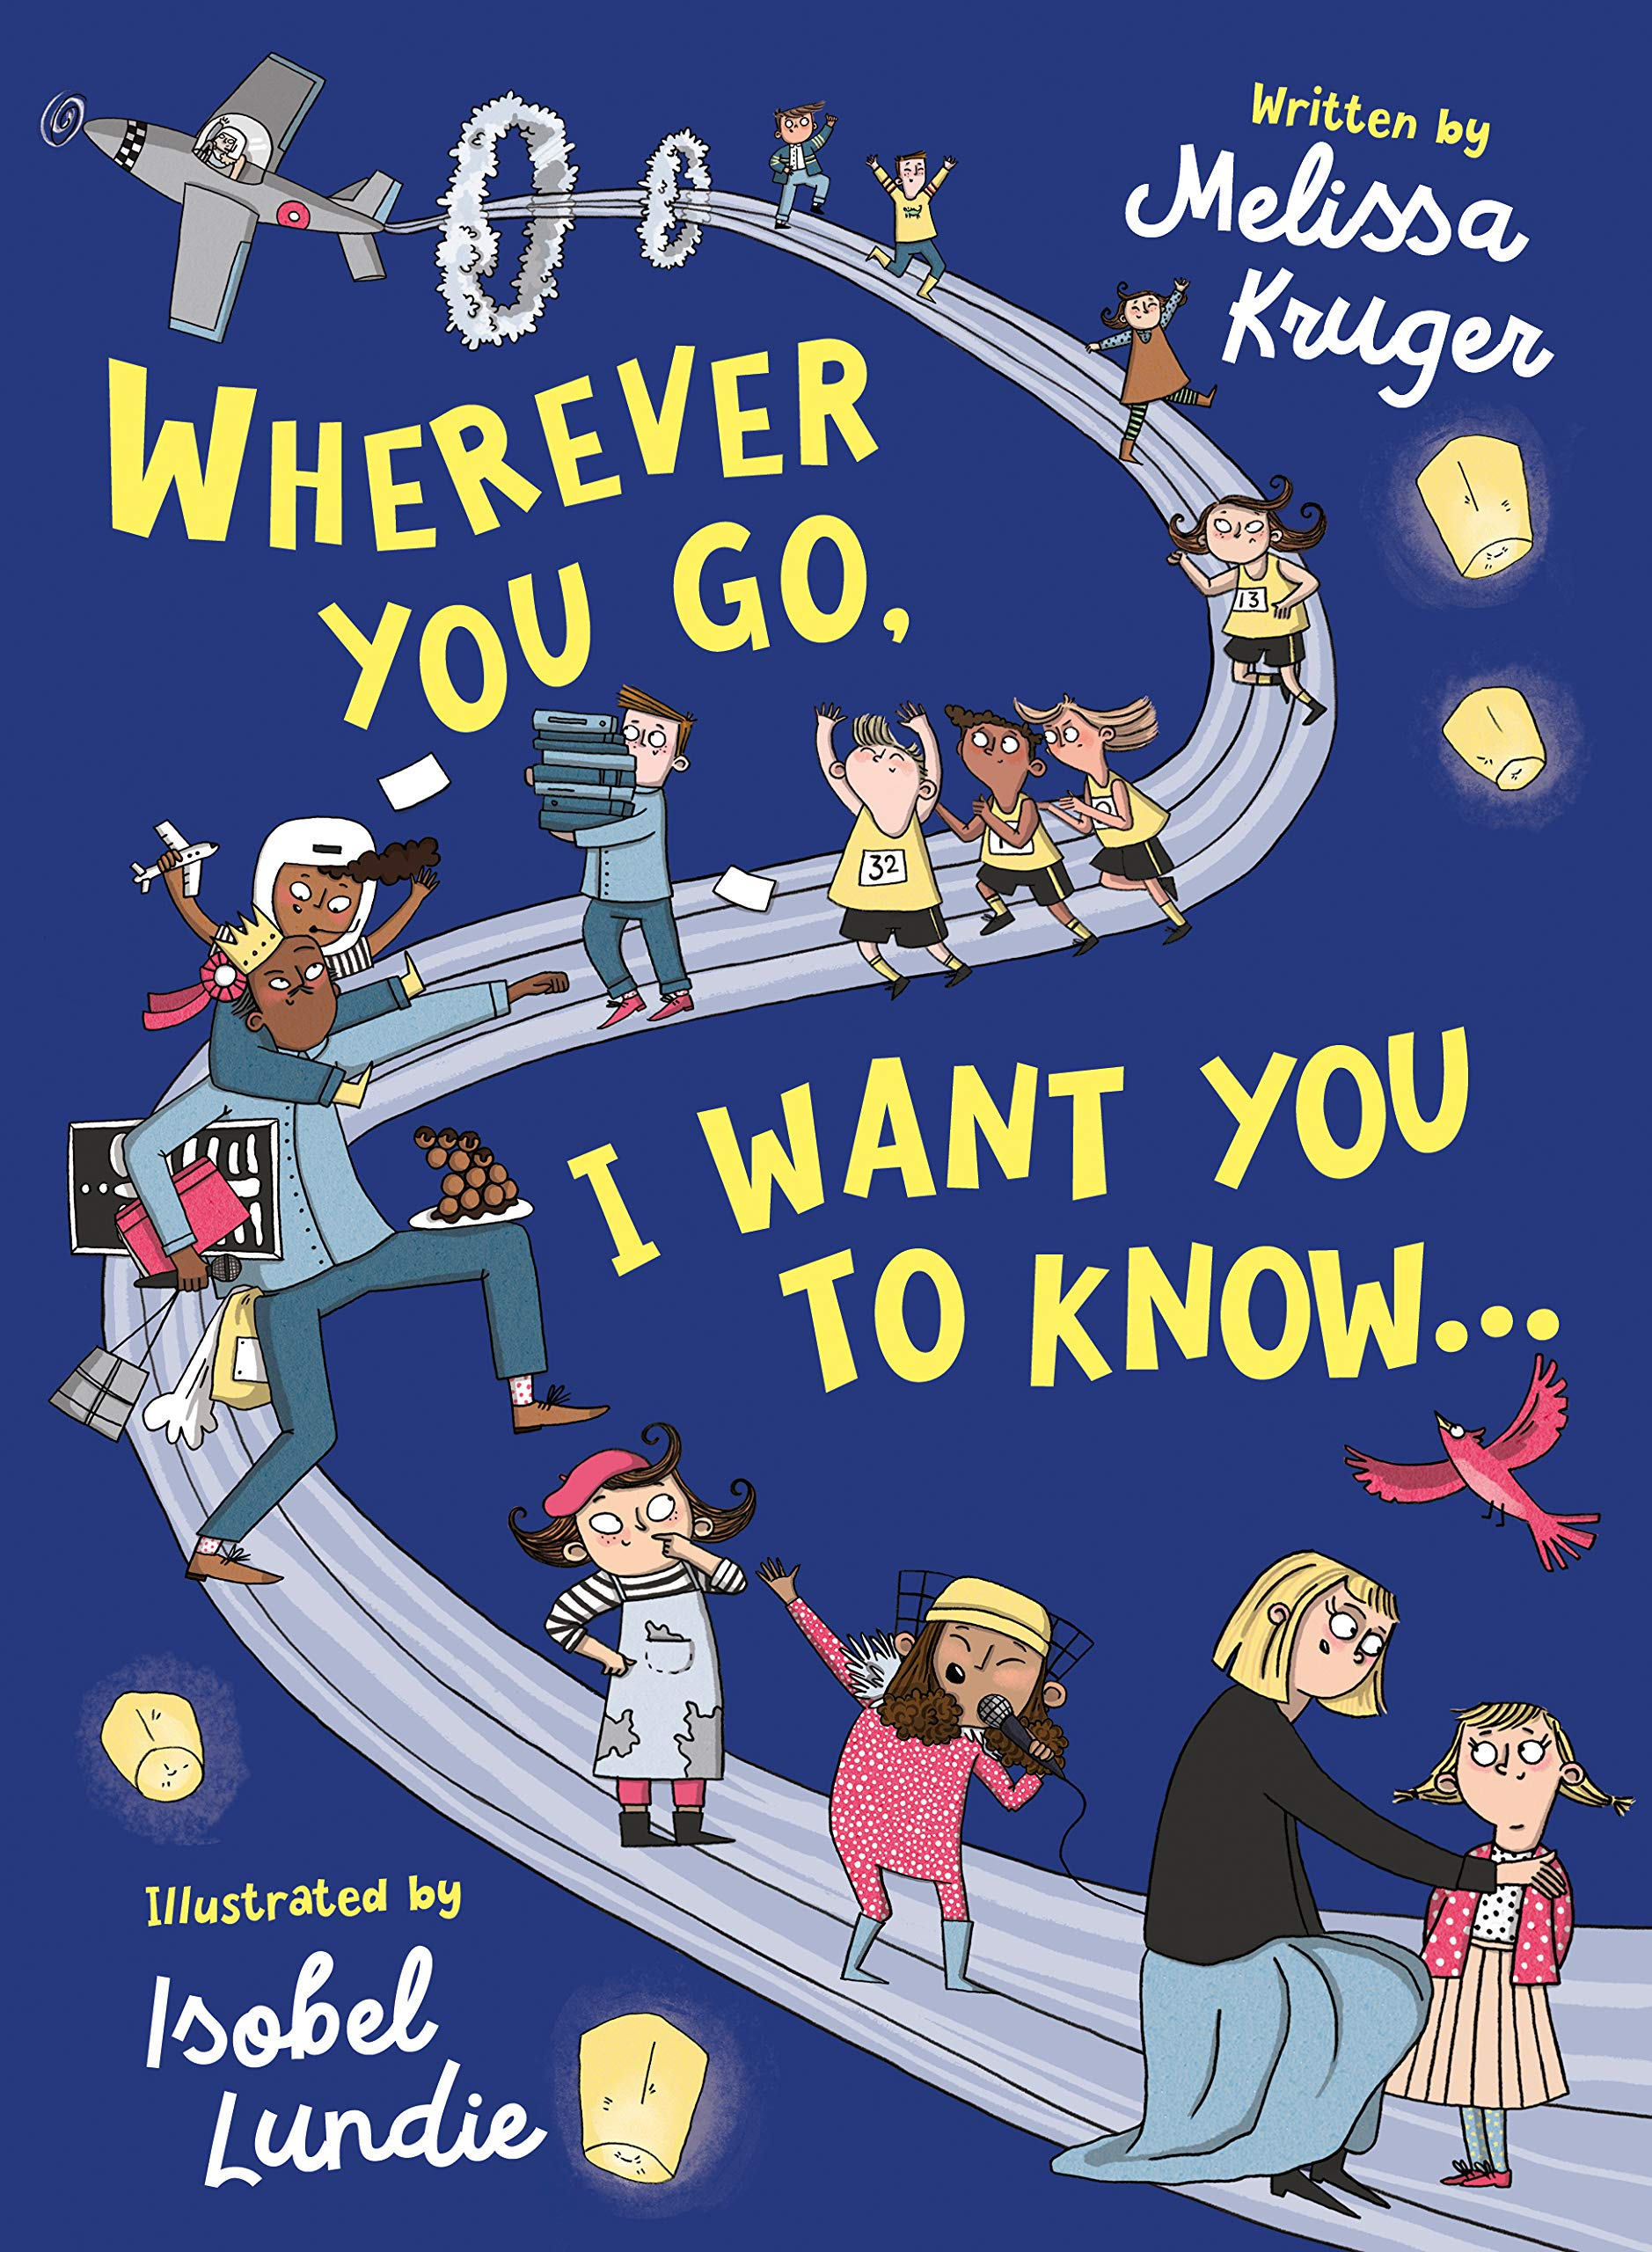 Amazon.com: Wherever You Go, I Want You to Know (9781784985356 ...